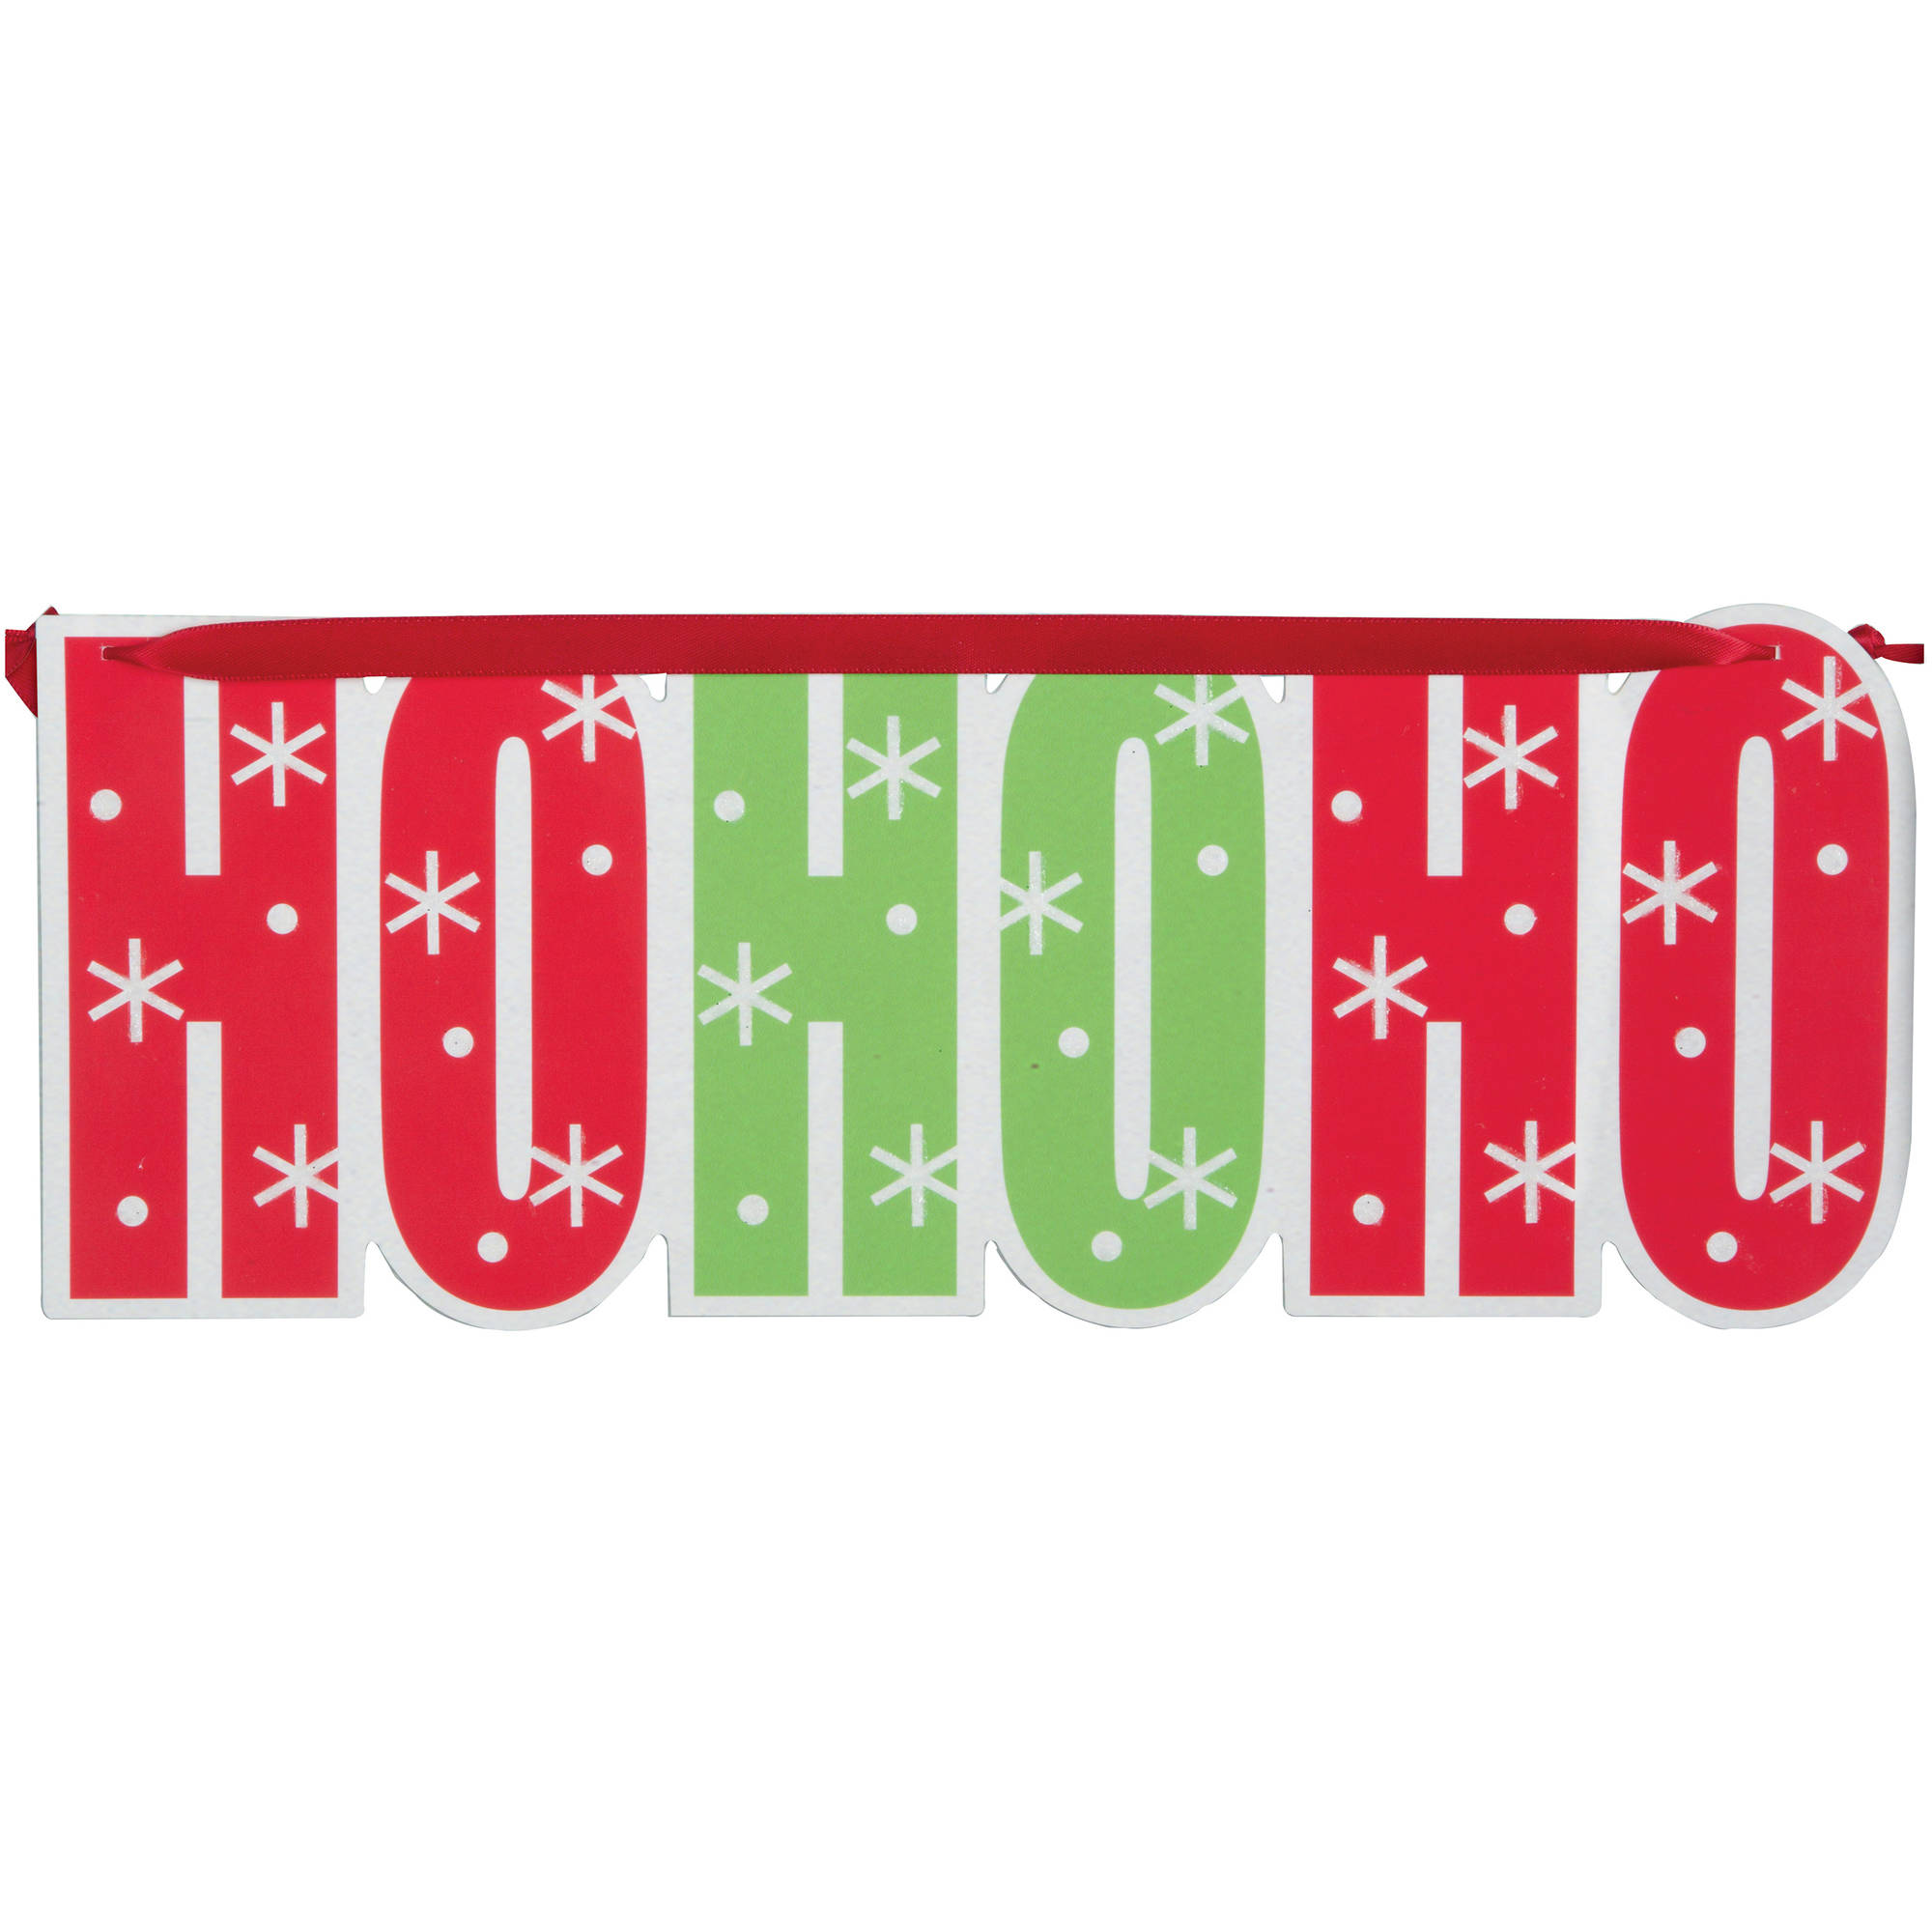 Hanging Ho Ho Ho Sign Christmas Decoration